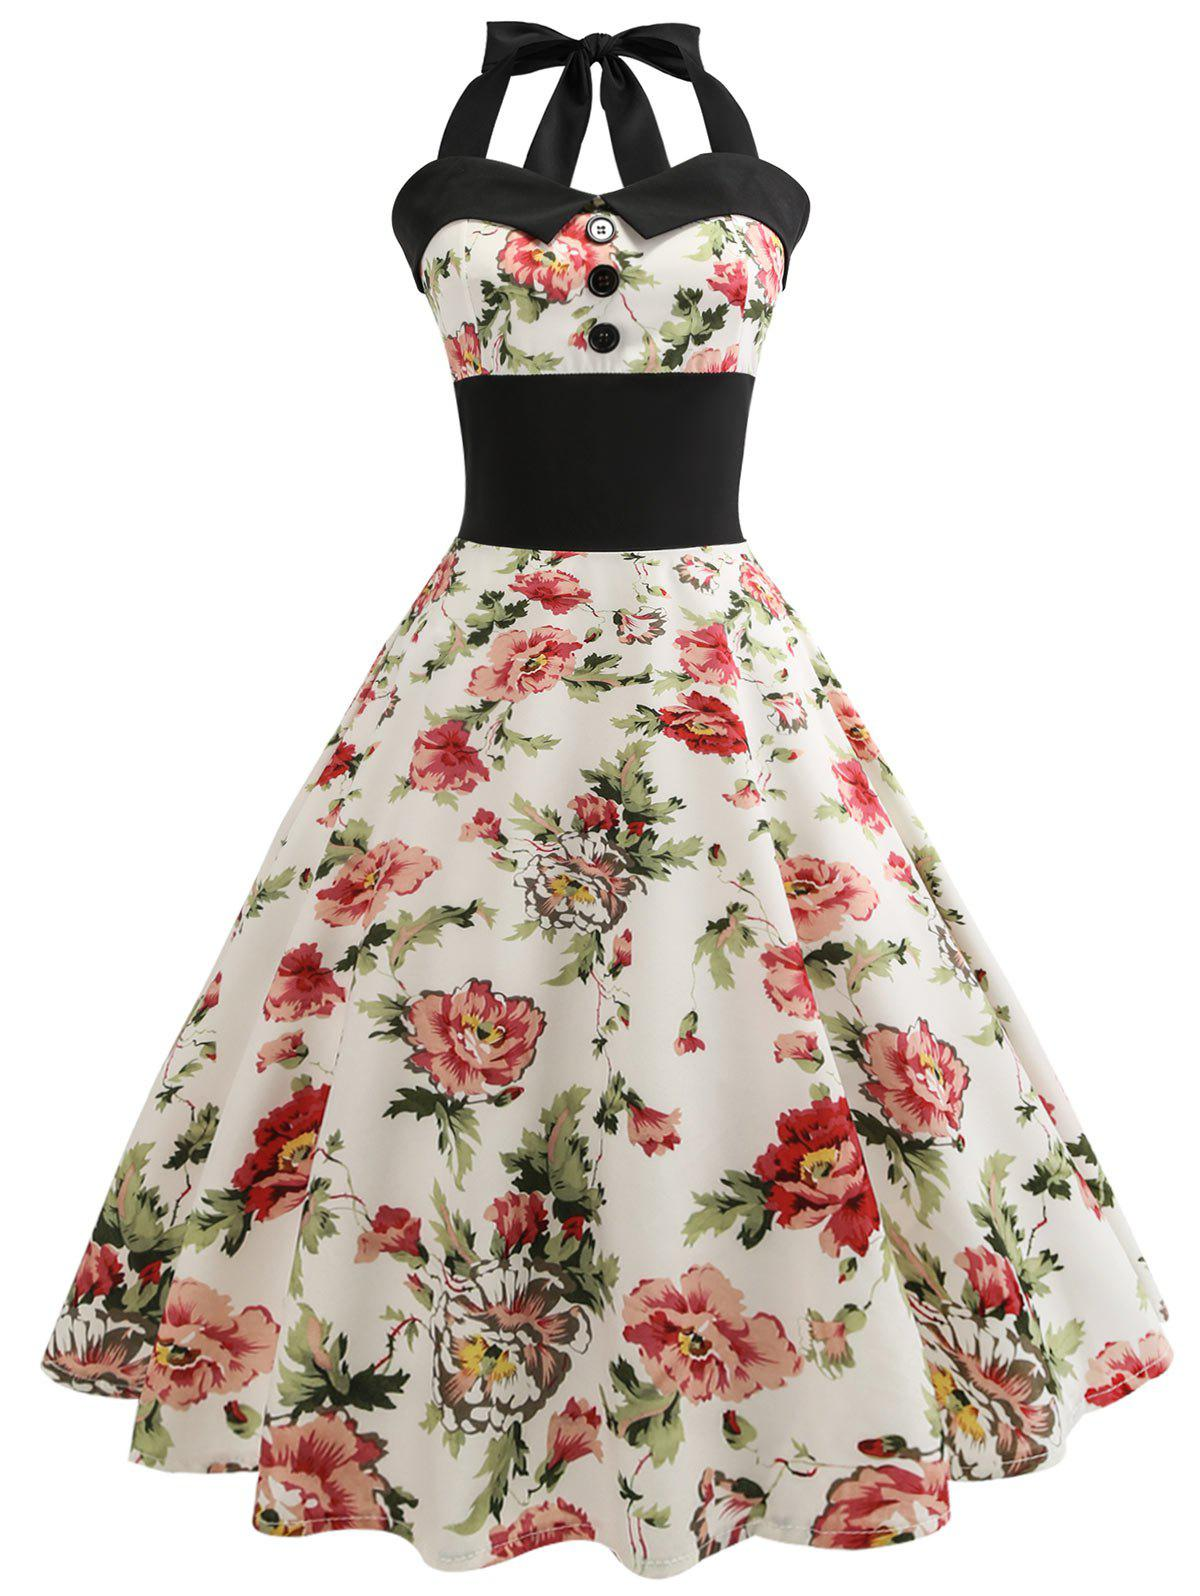 Buy Retro Floral Print Halter Pin Up Dress